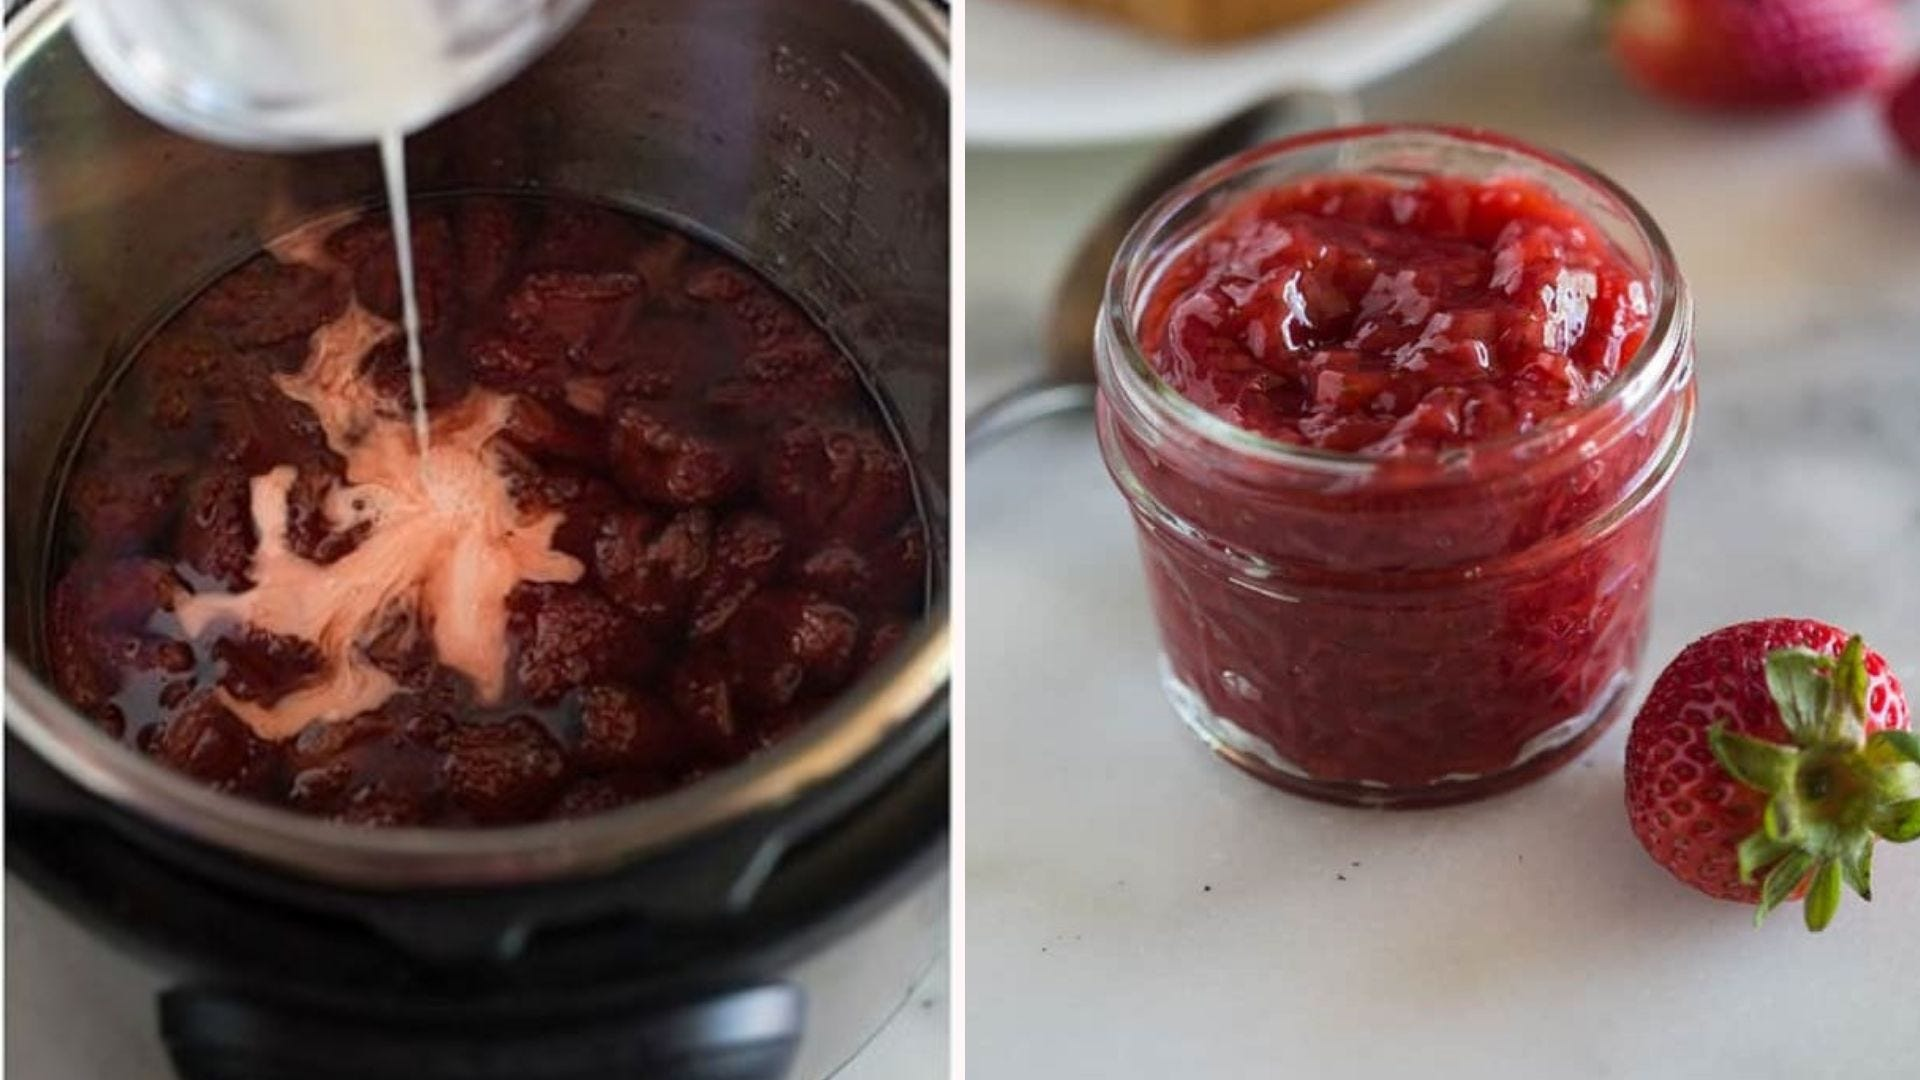 Strawberries, cornstarch, and water being mixed in an Instant Pot, and a jar full of strawberry jam.